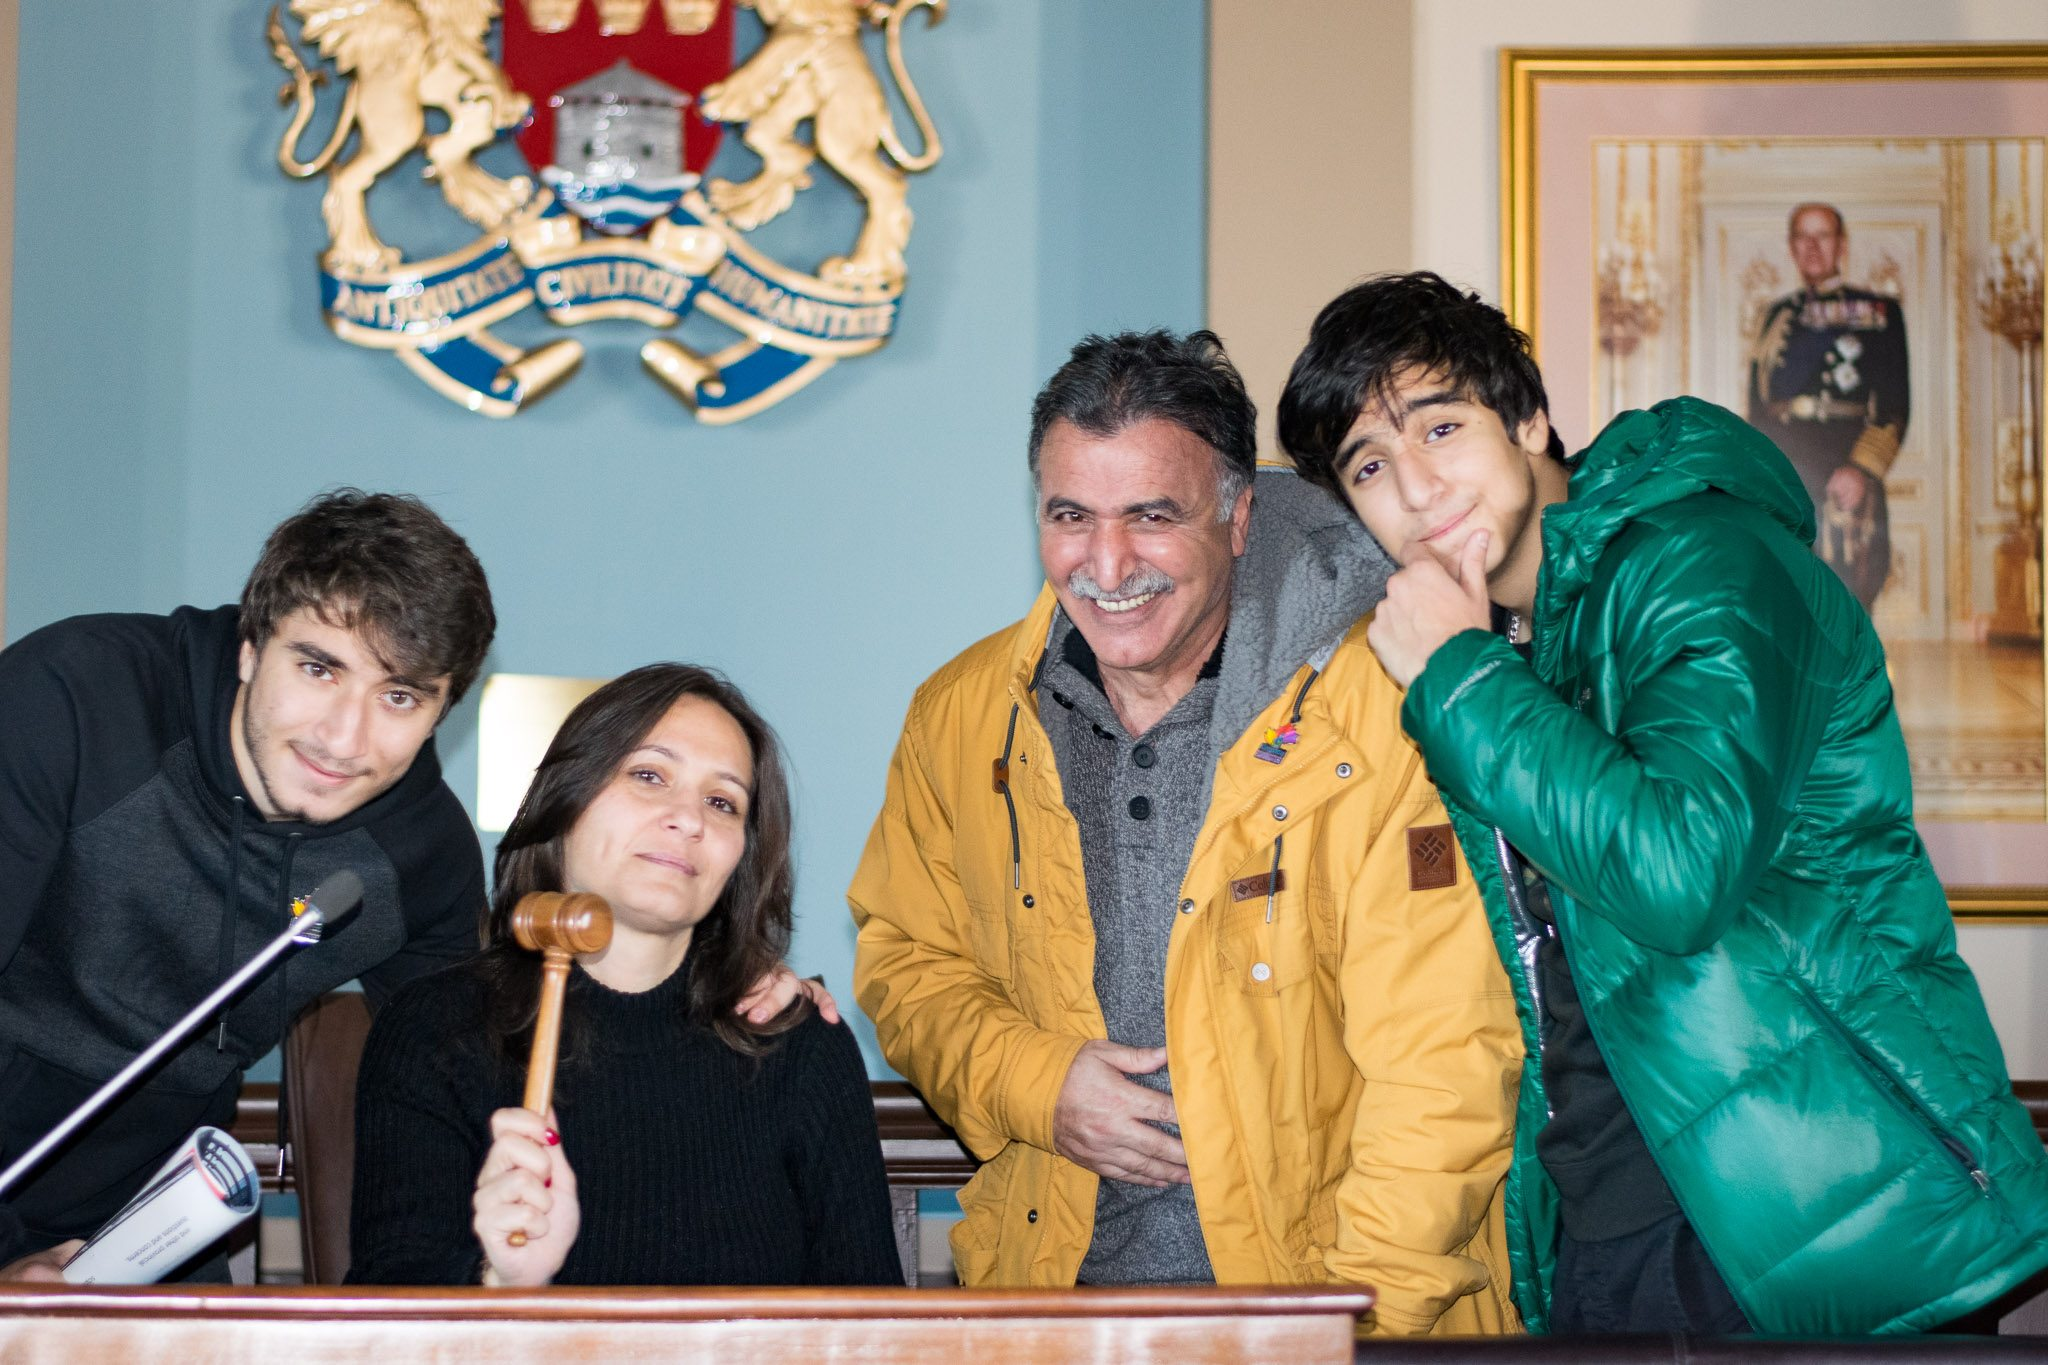 The Saeed family at Kingston City Hall (photo: Ray Aryle)